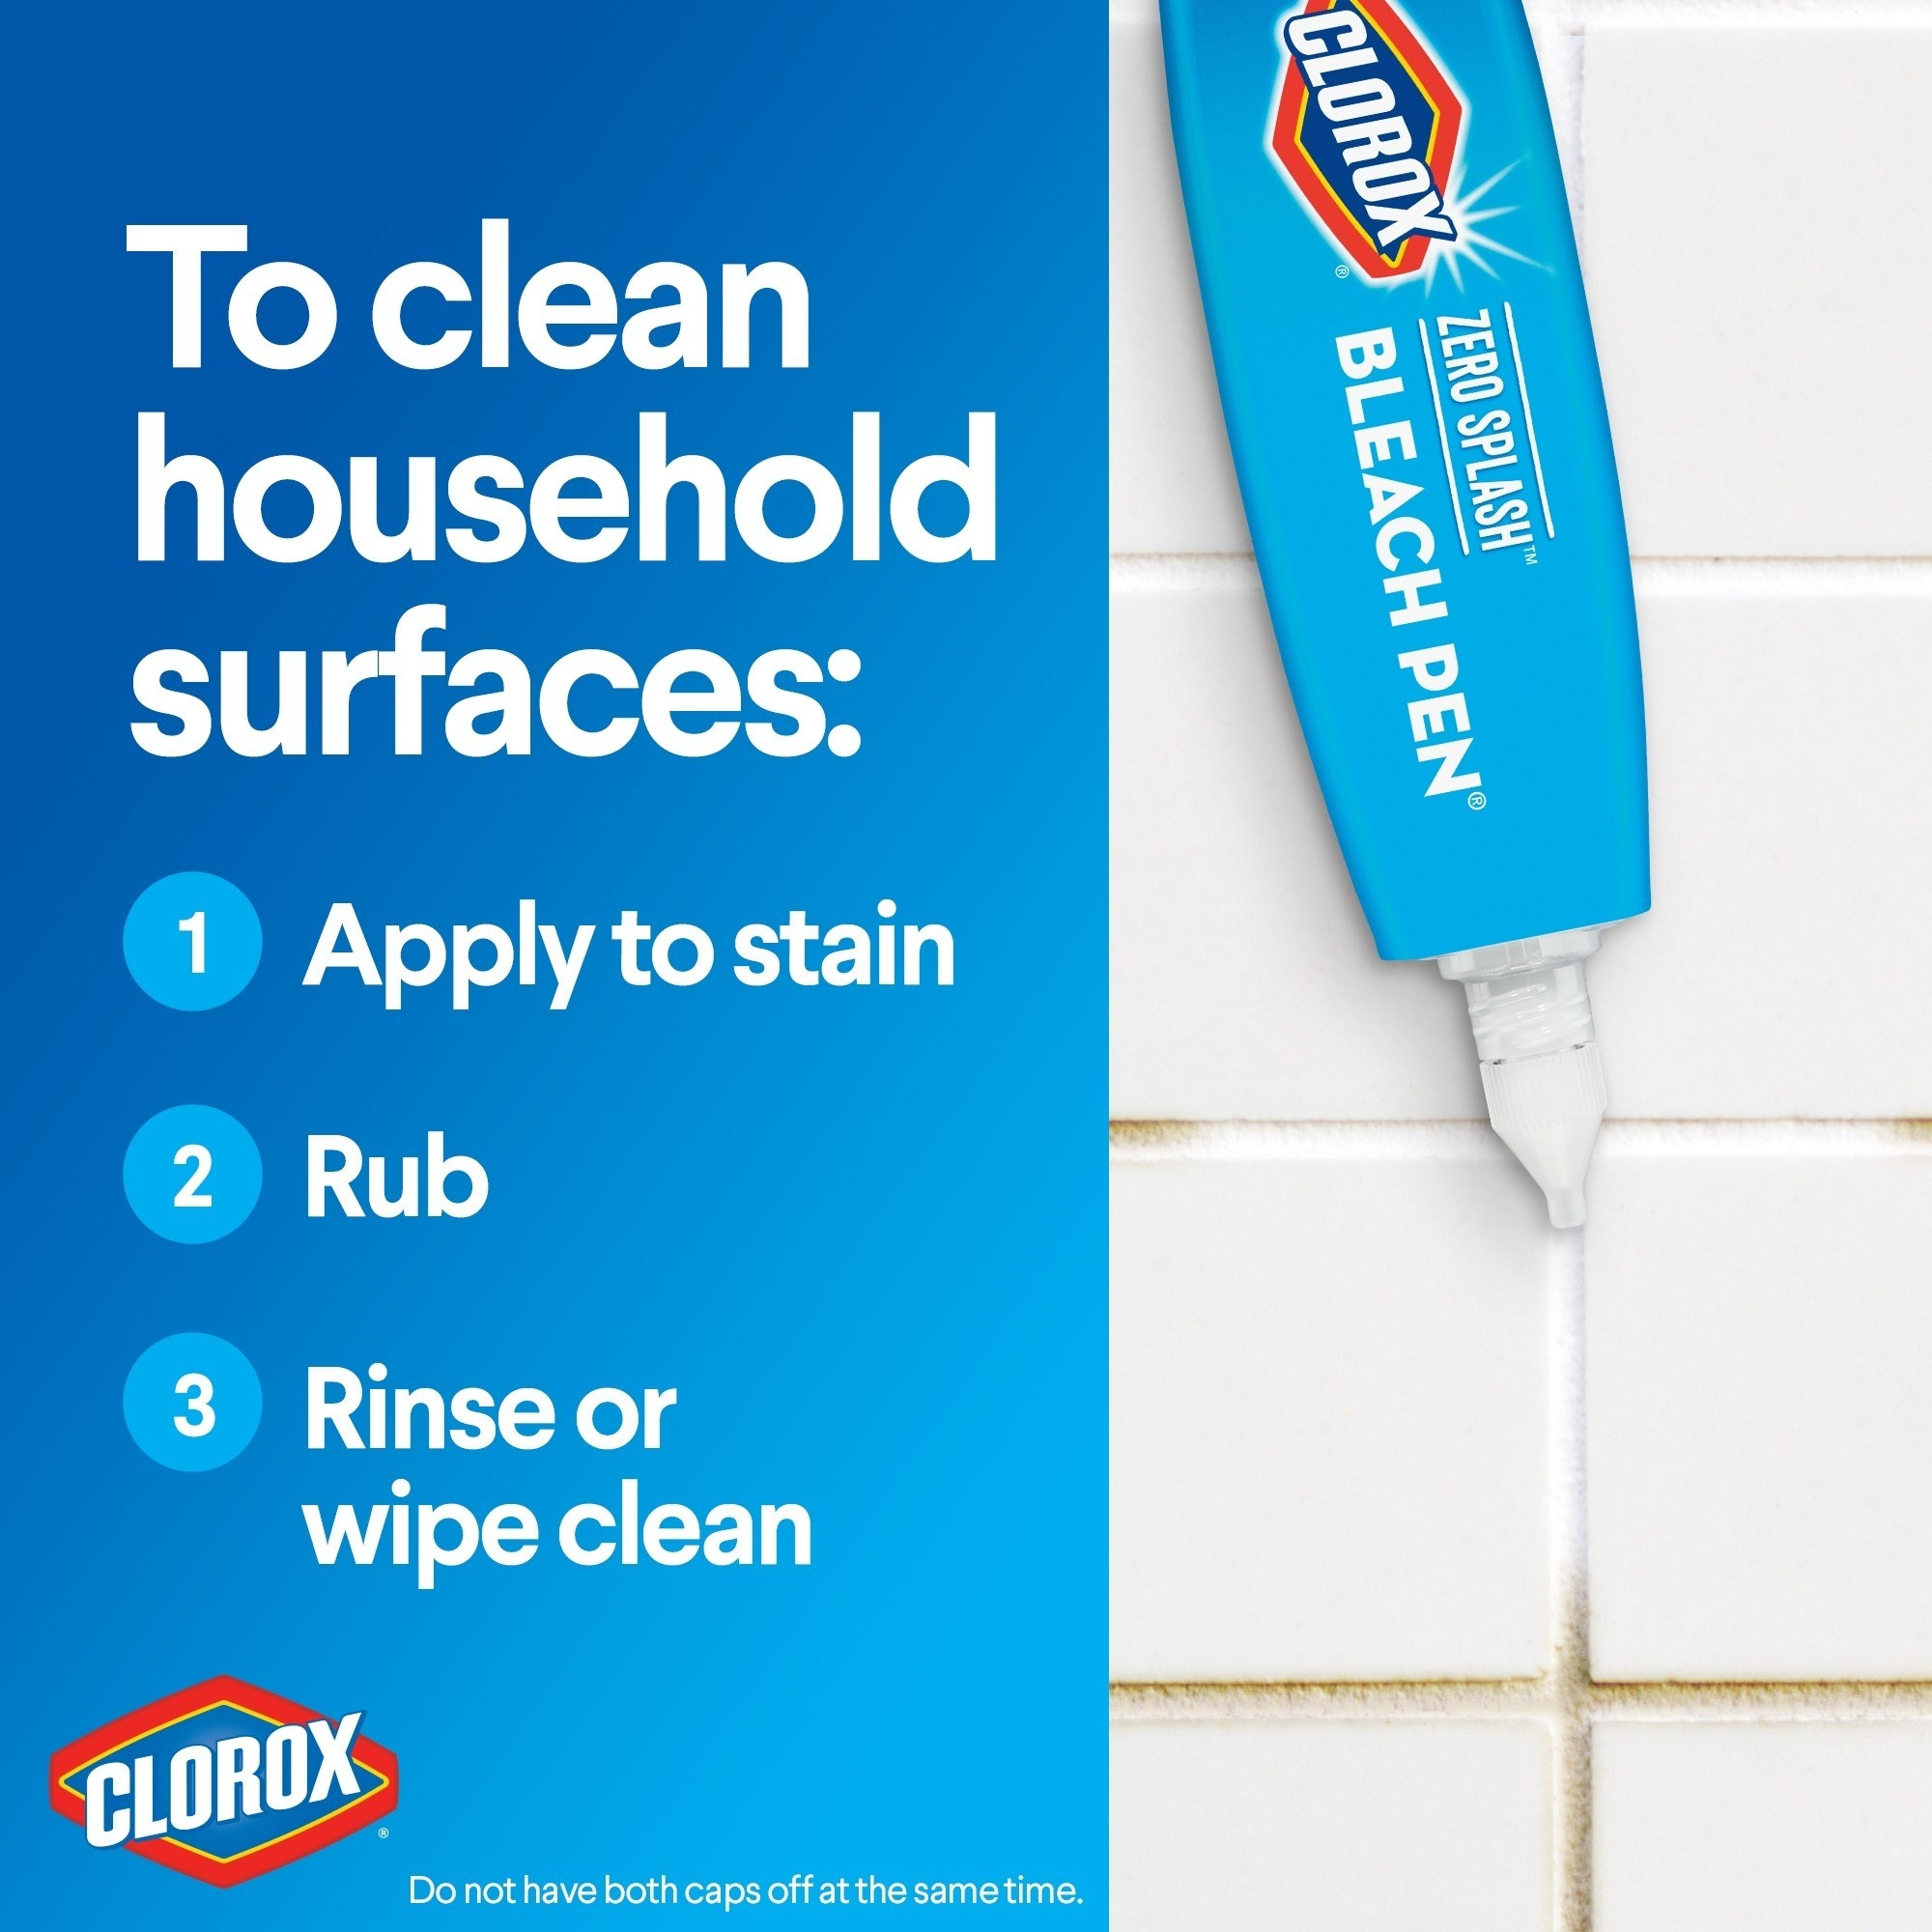 The Clorox pen